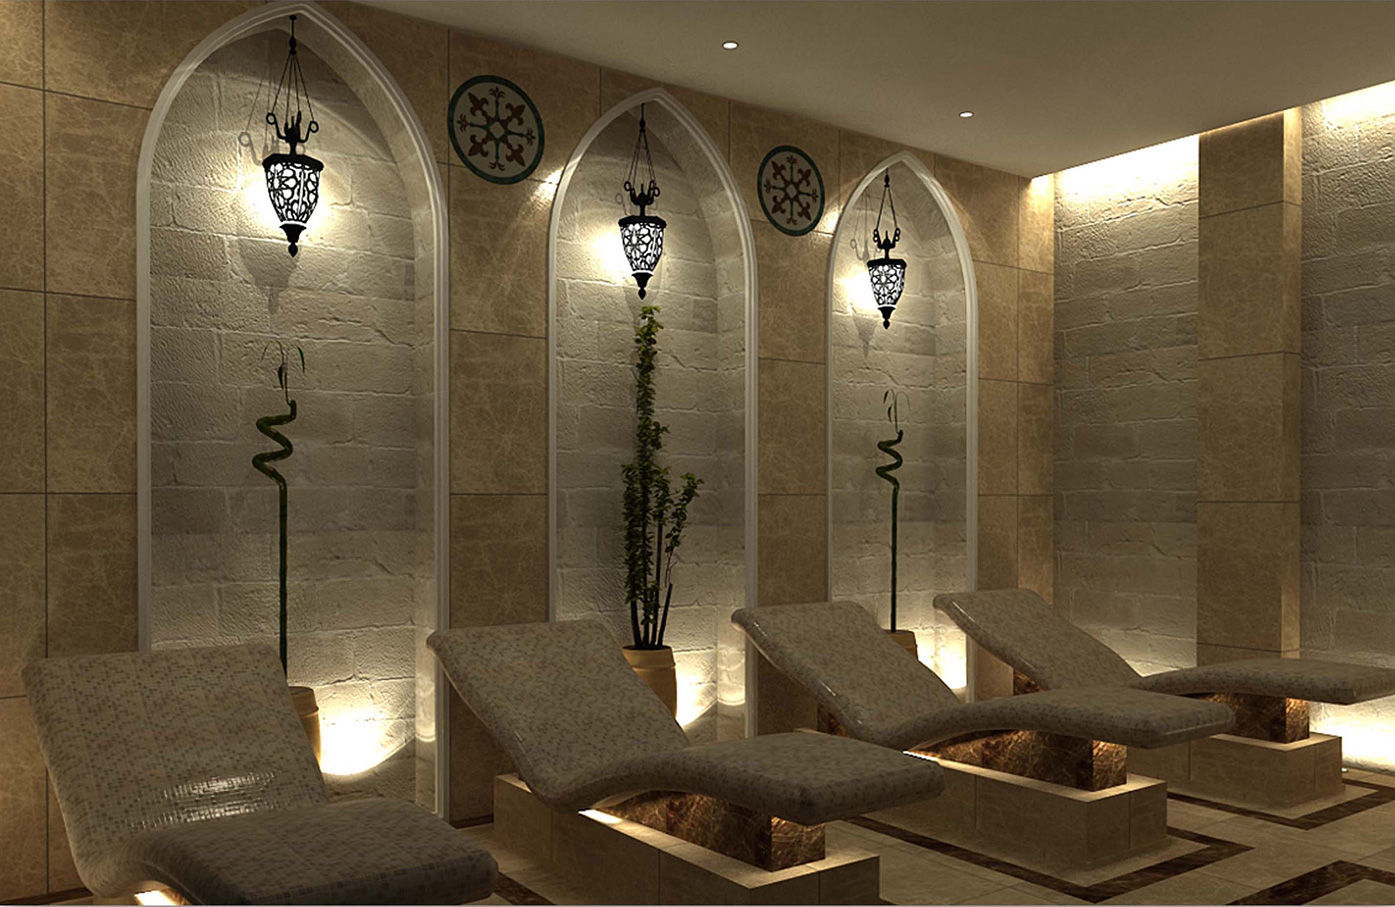 Lit De Relaxation Professionnel Juno Spa Wellness